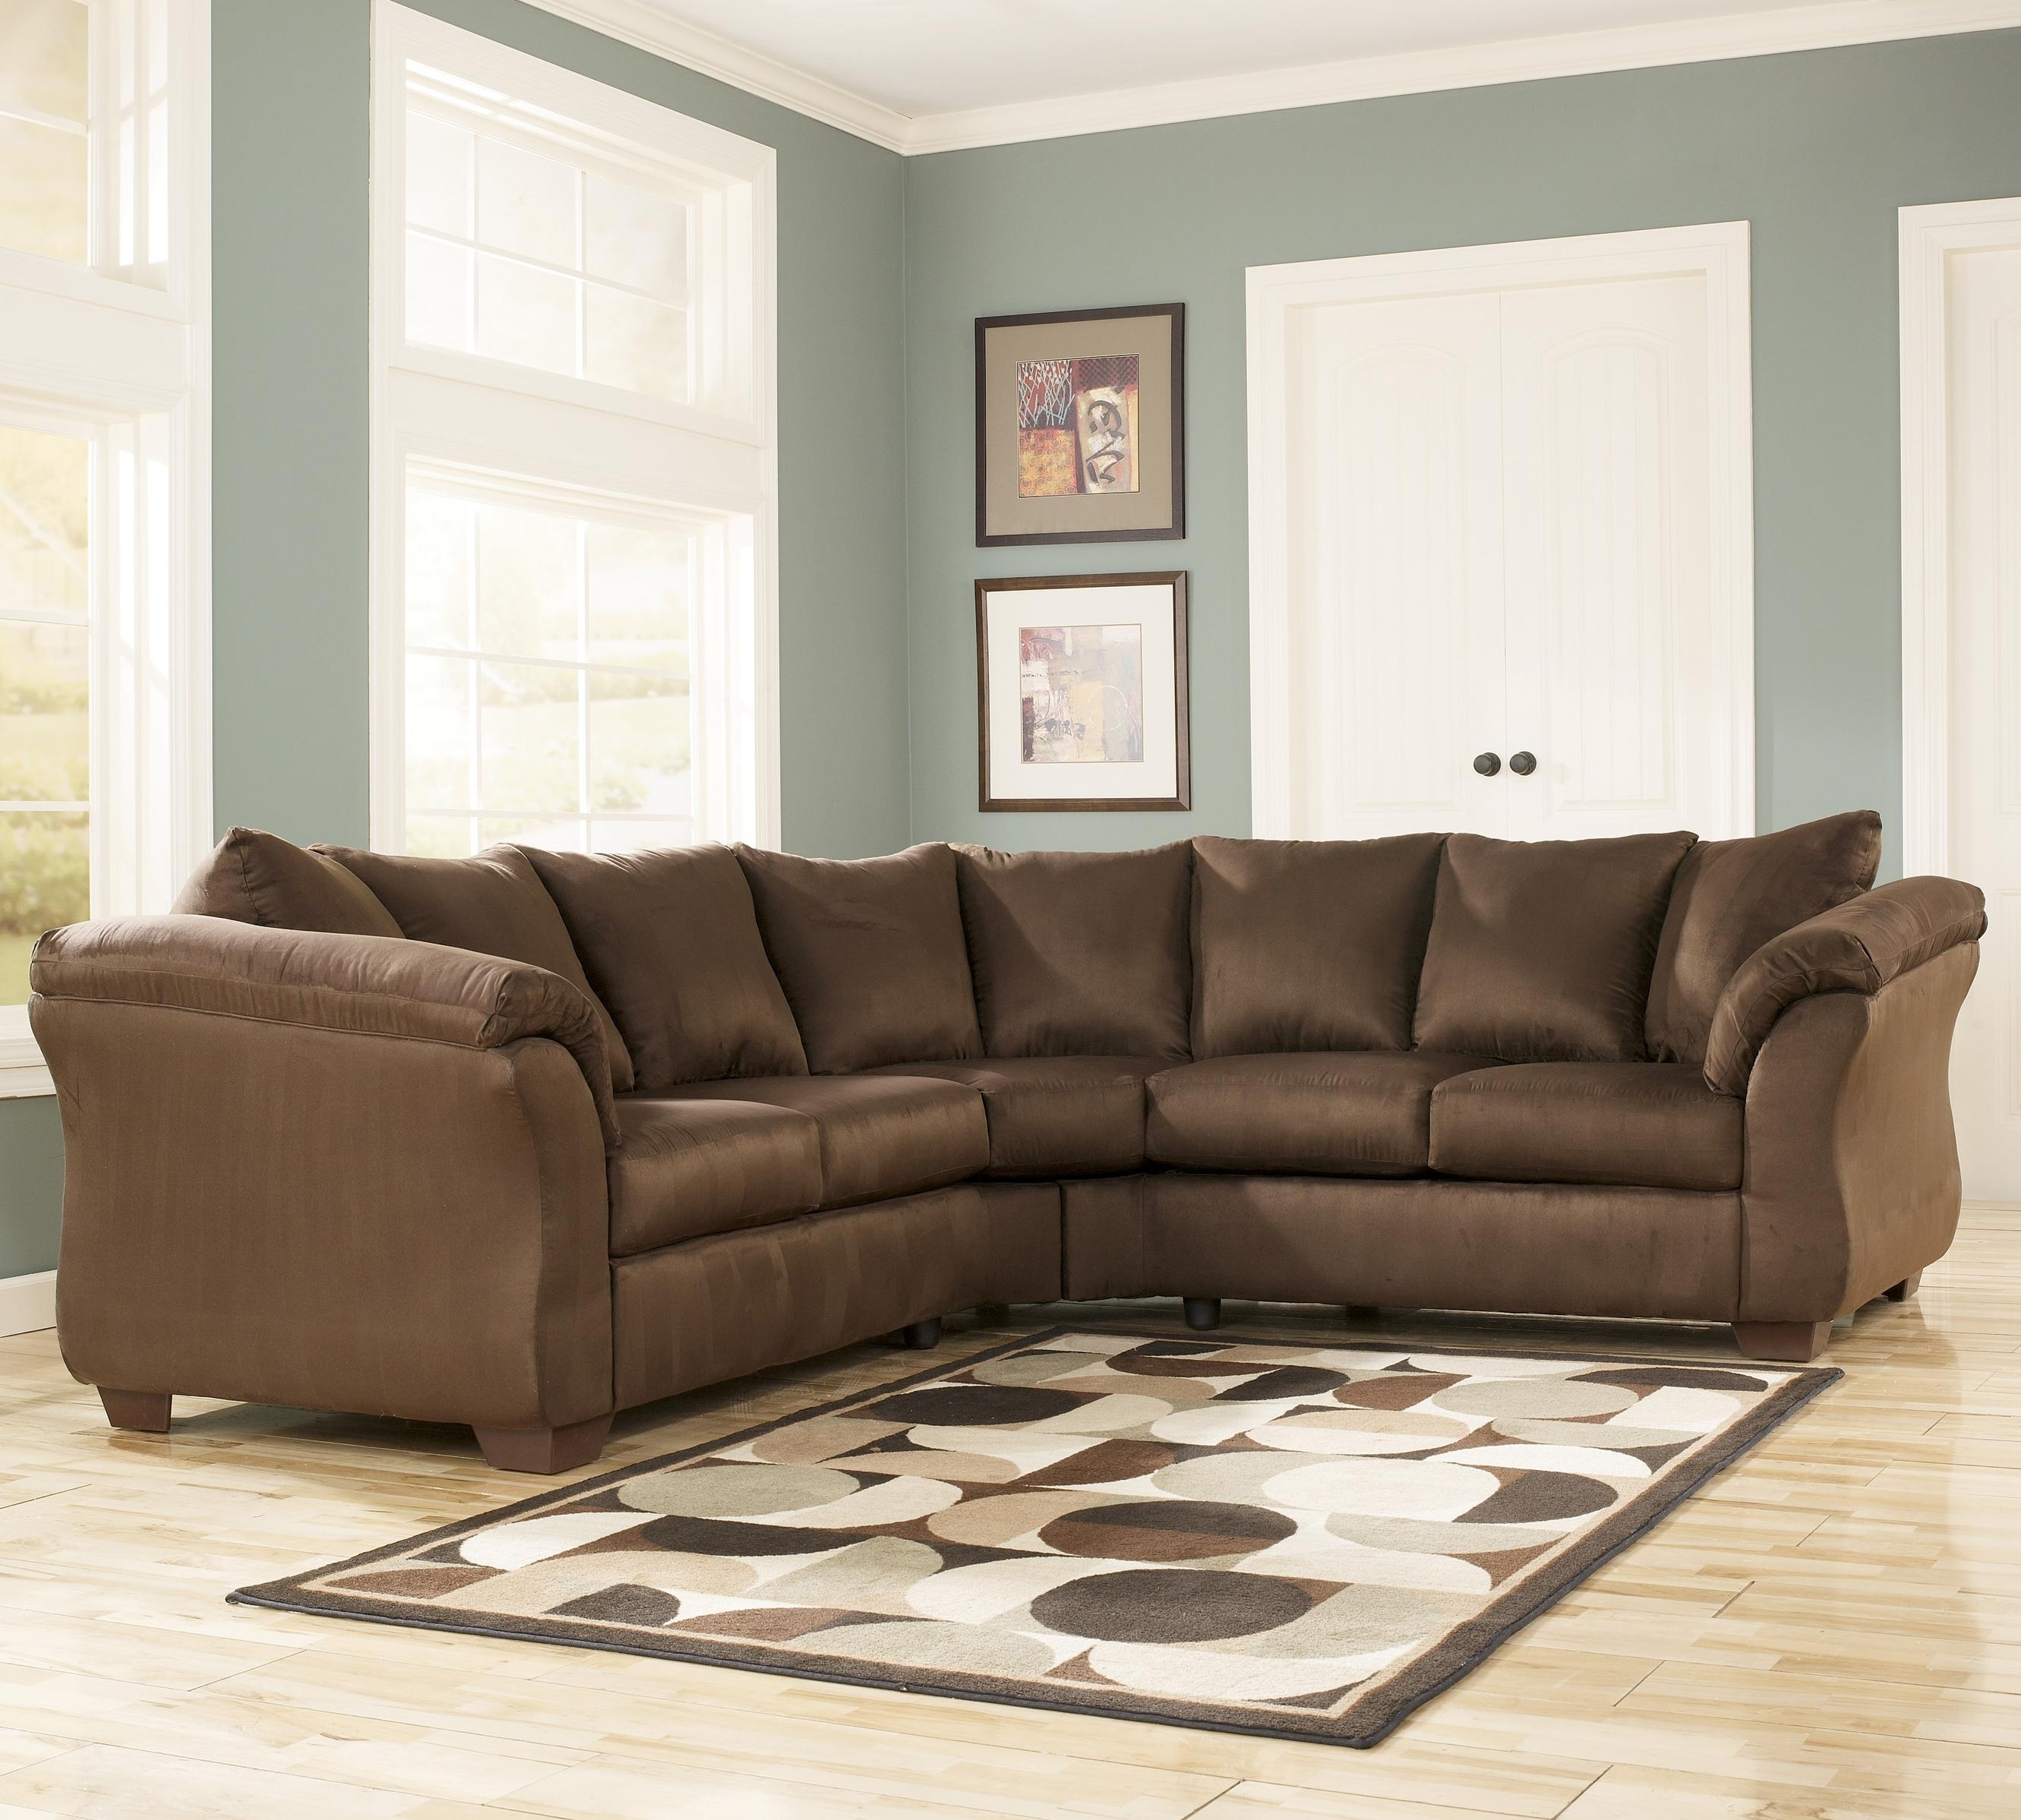 Signature Designashley Darcy – Cafe Contemporary Sectional Sofa For Jacksonville Nc Sectional Sofas (Image 9 of 10)